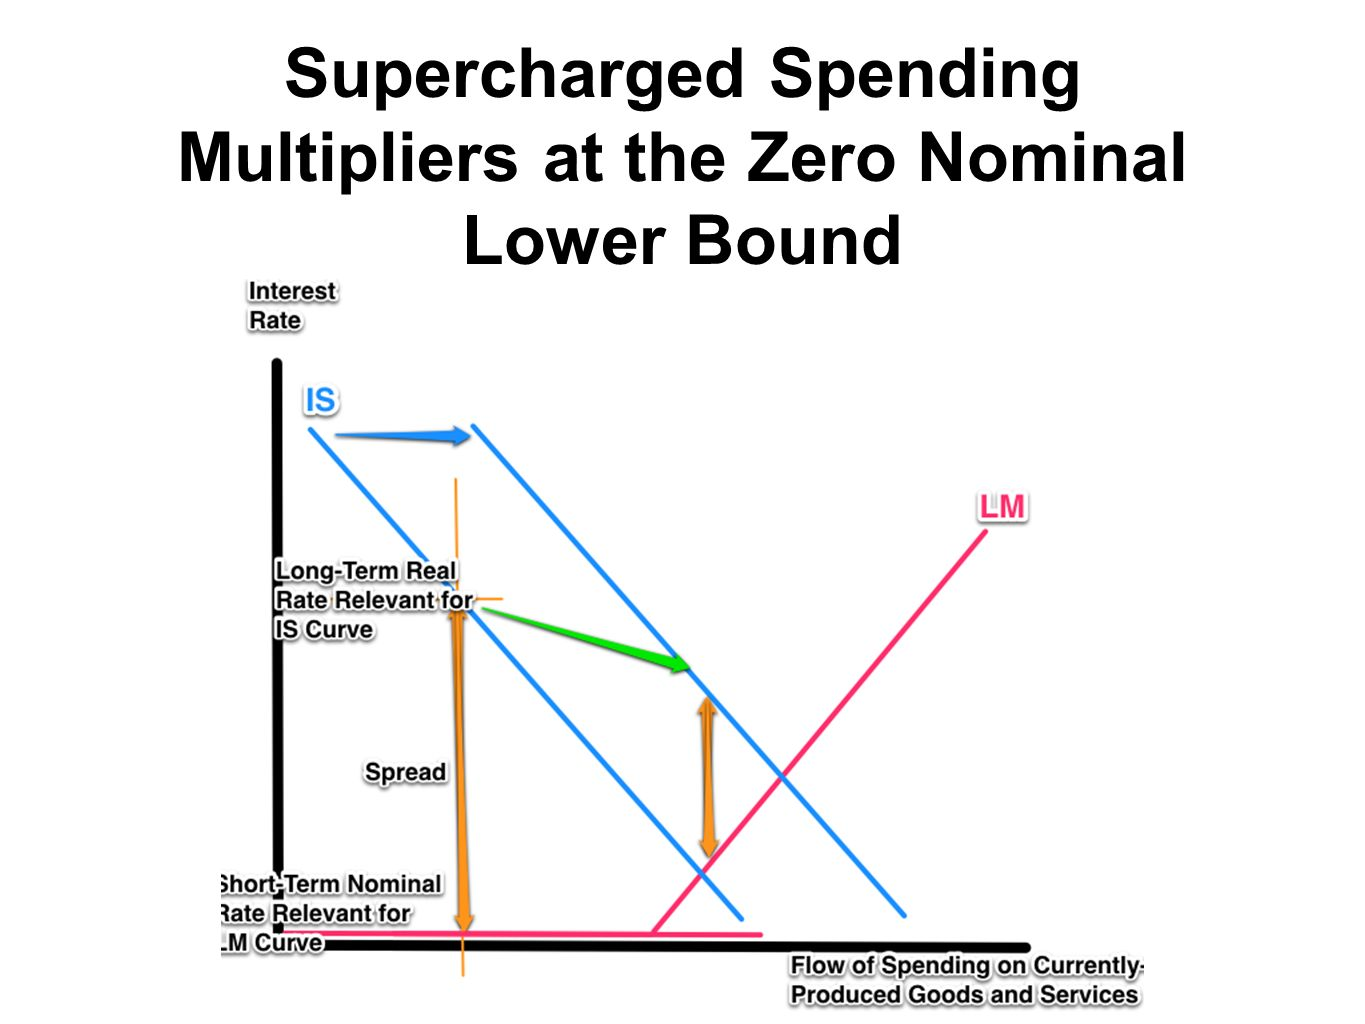 Supercharged Spending Multipliers at the Zero Nominal Lower Bound